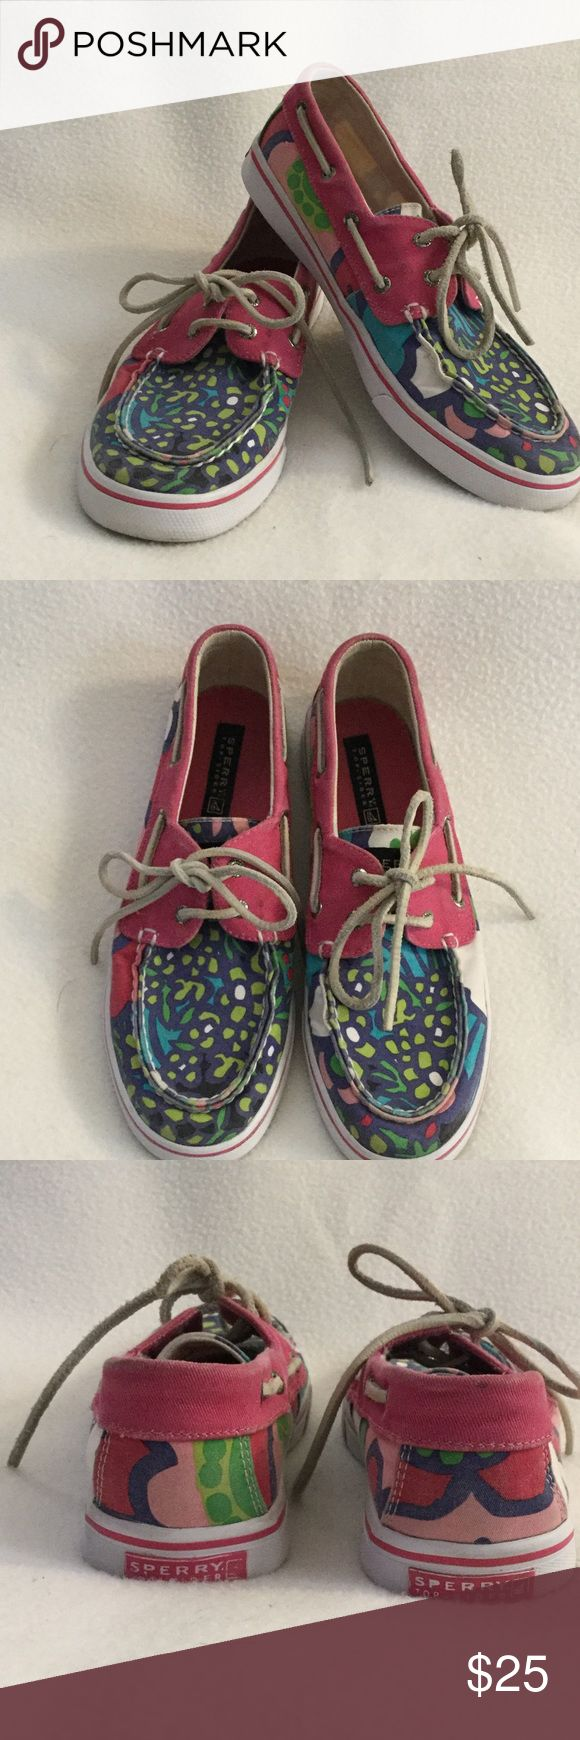 🌺🌼SPERRY TOP-SIDER🌼🌸 Fun uni-sex Sperry's for summer. There are some marks and fading on the material but otherwise in great condition. Style name: Bahama. Men's Size 5.5, women's size 7. These run a bit big so they will fit a 7 1/2 Sperry Shoes Flats & Loafers